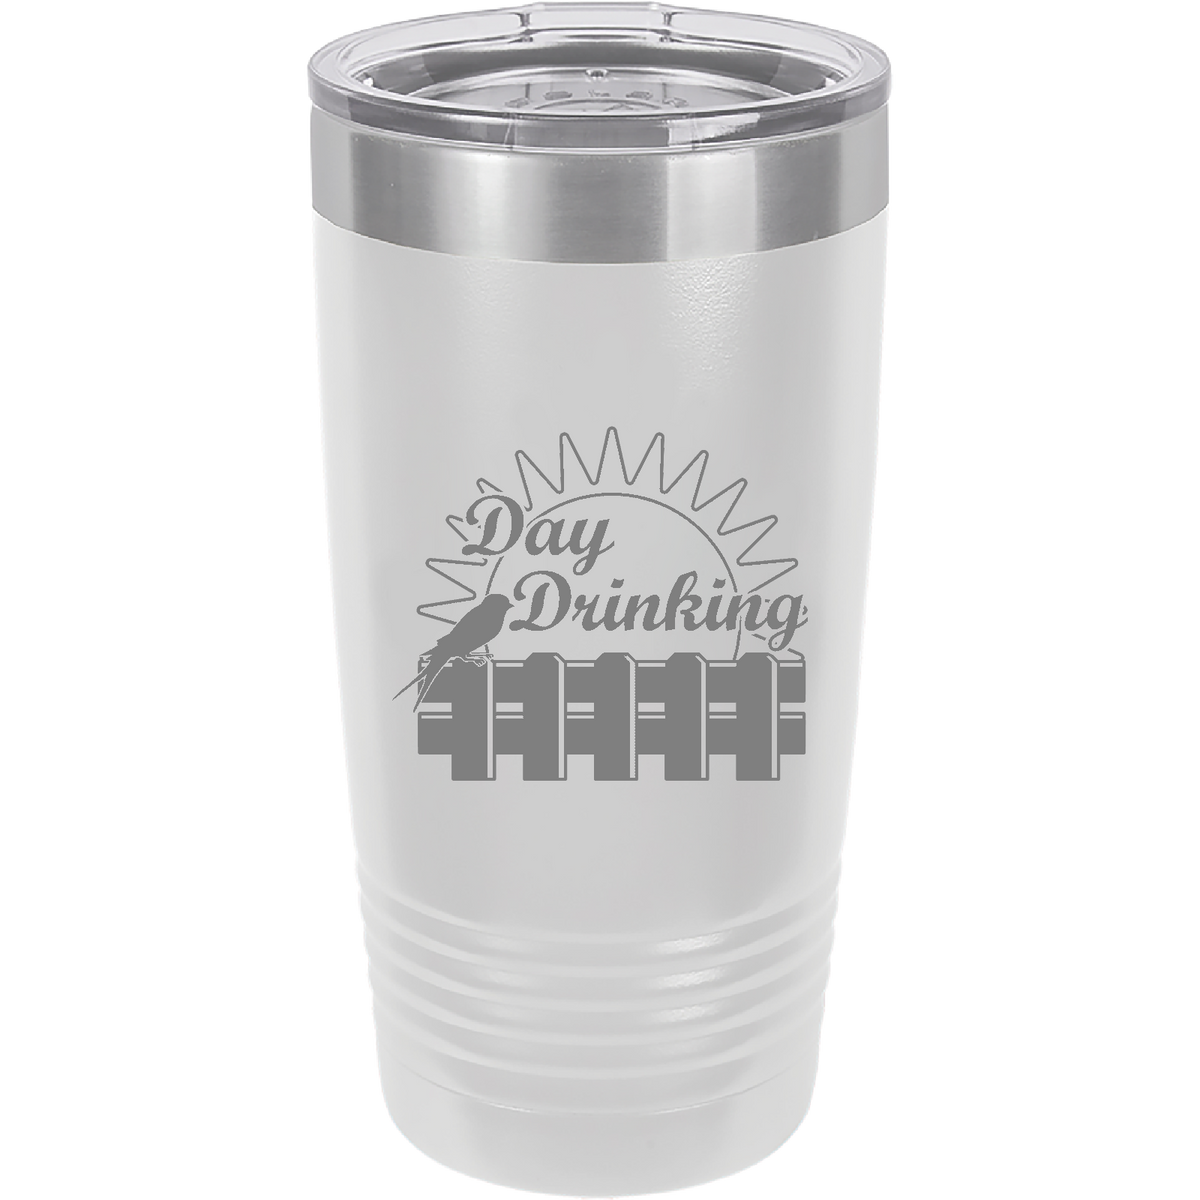 Day drinking - 20oz. Engraved Tumbler with Clear Lid